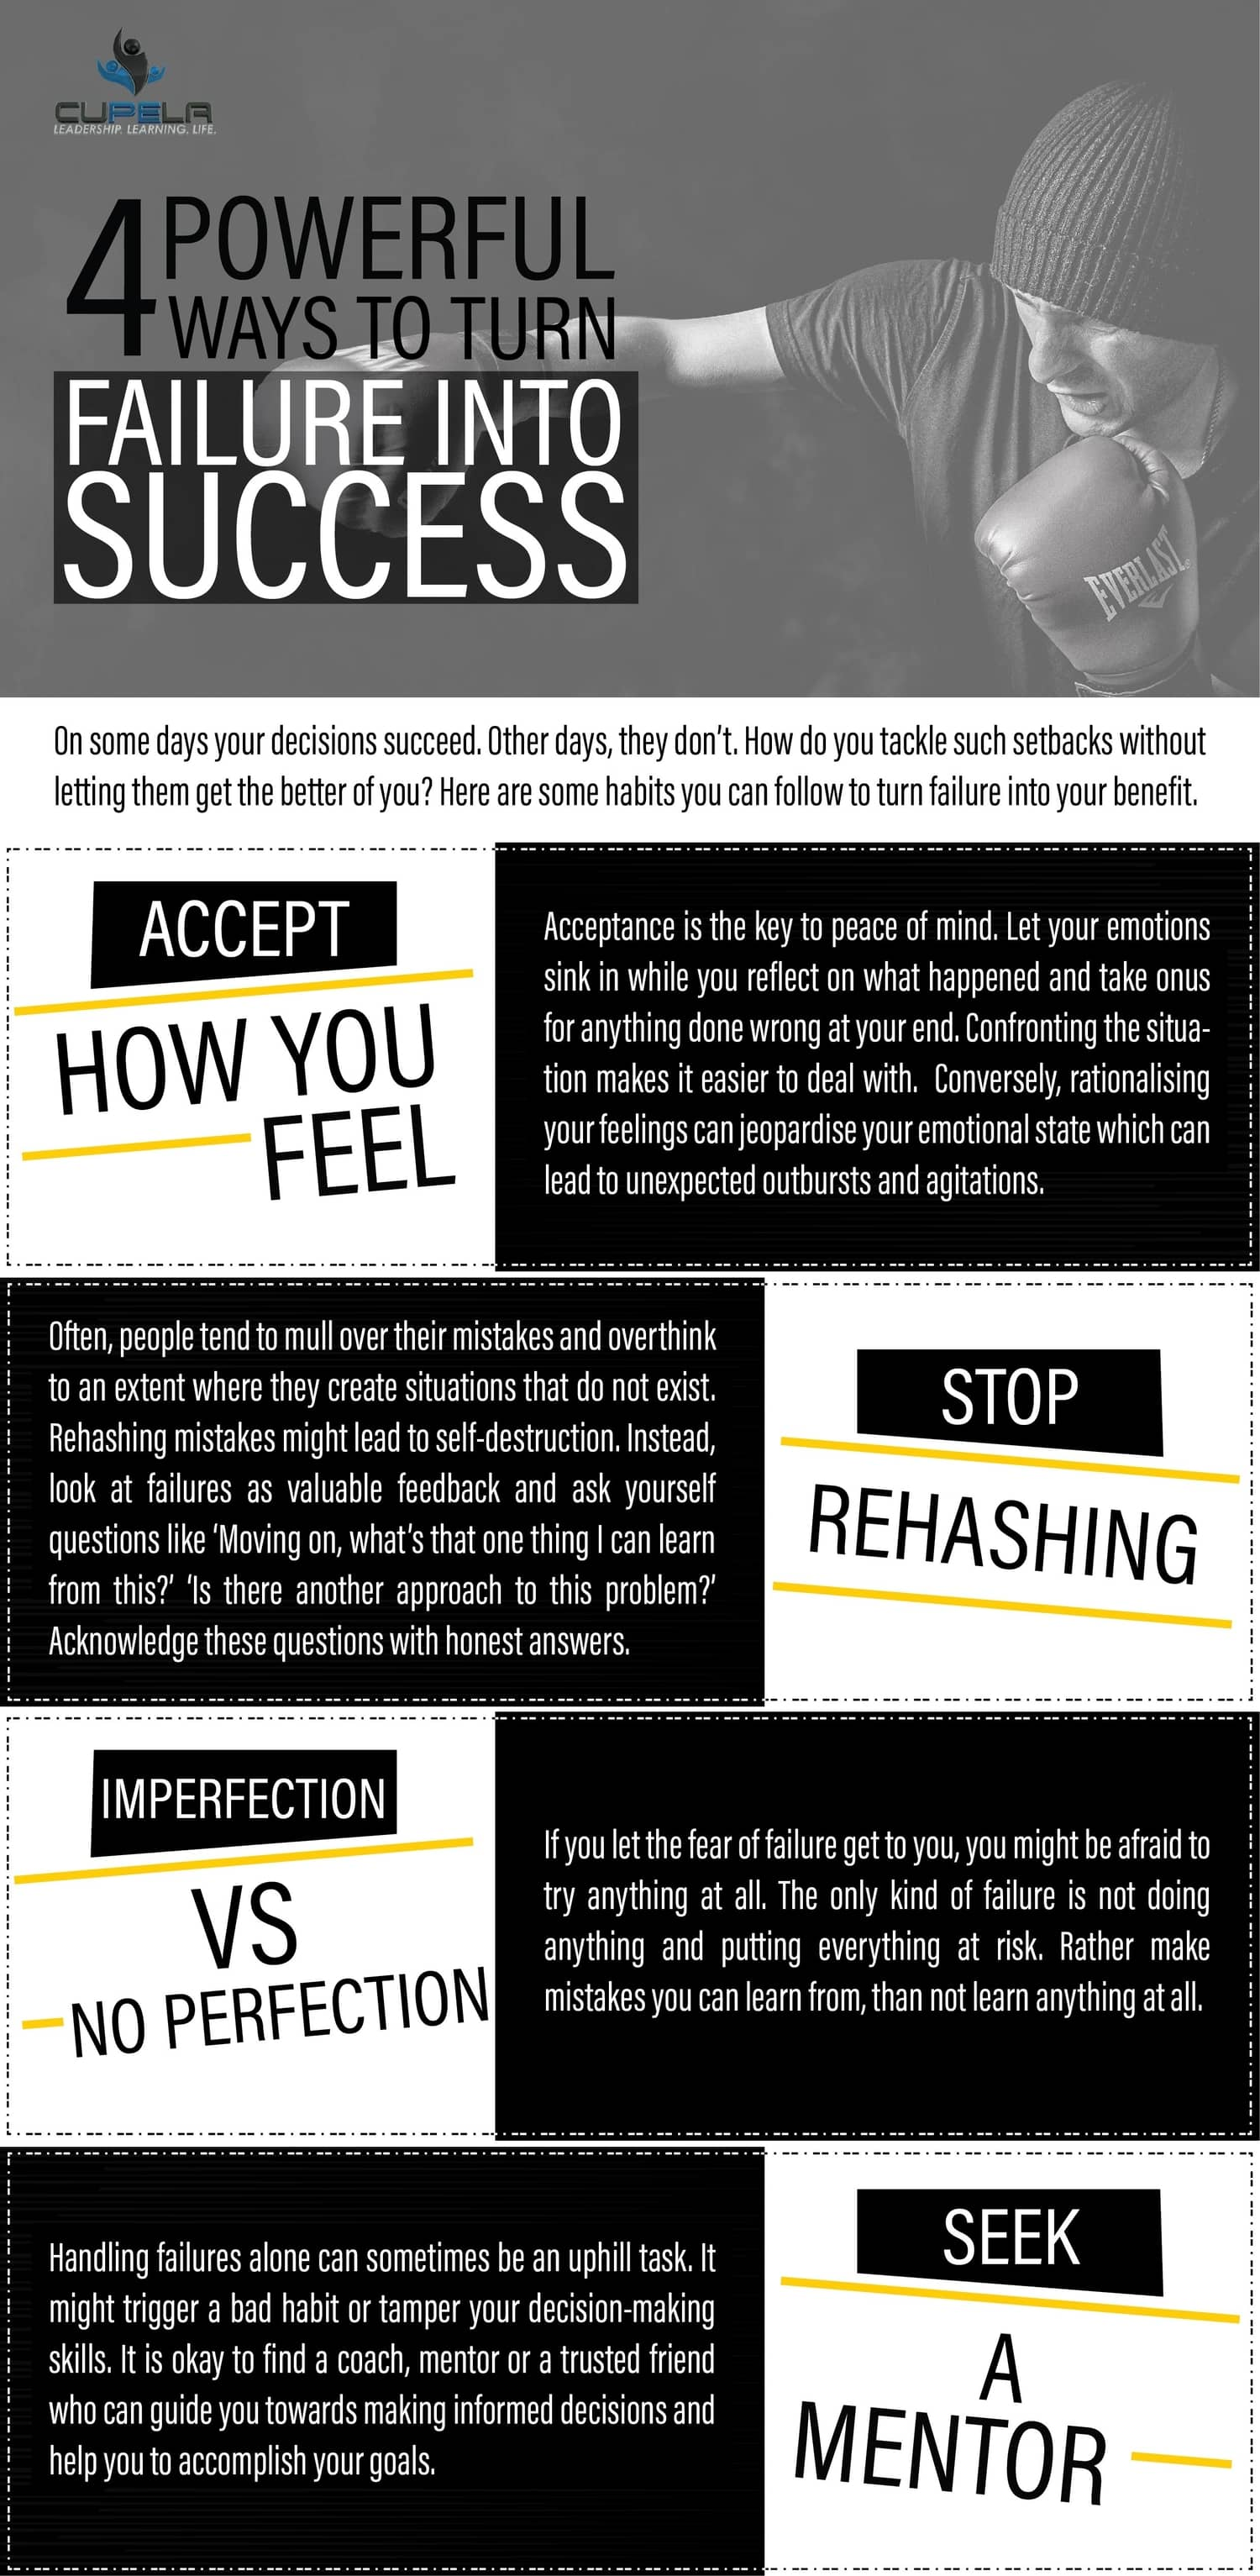 4 ways to manage failures compressed.jpg